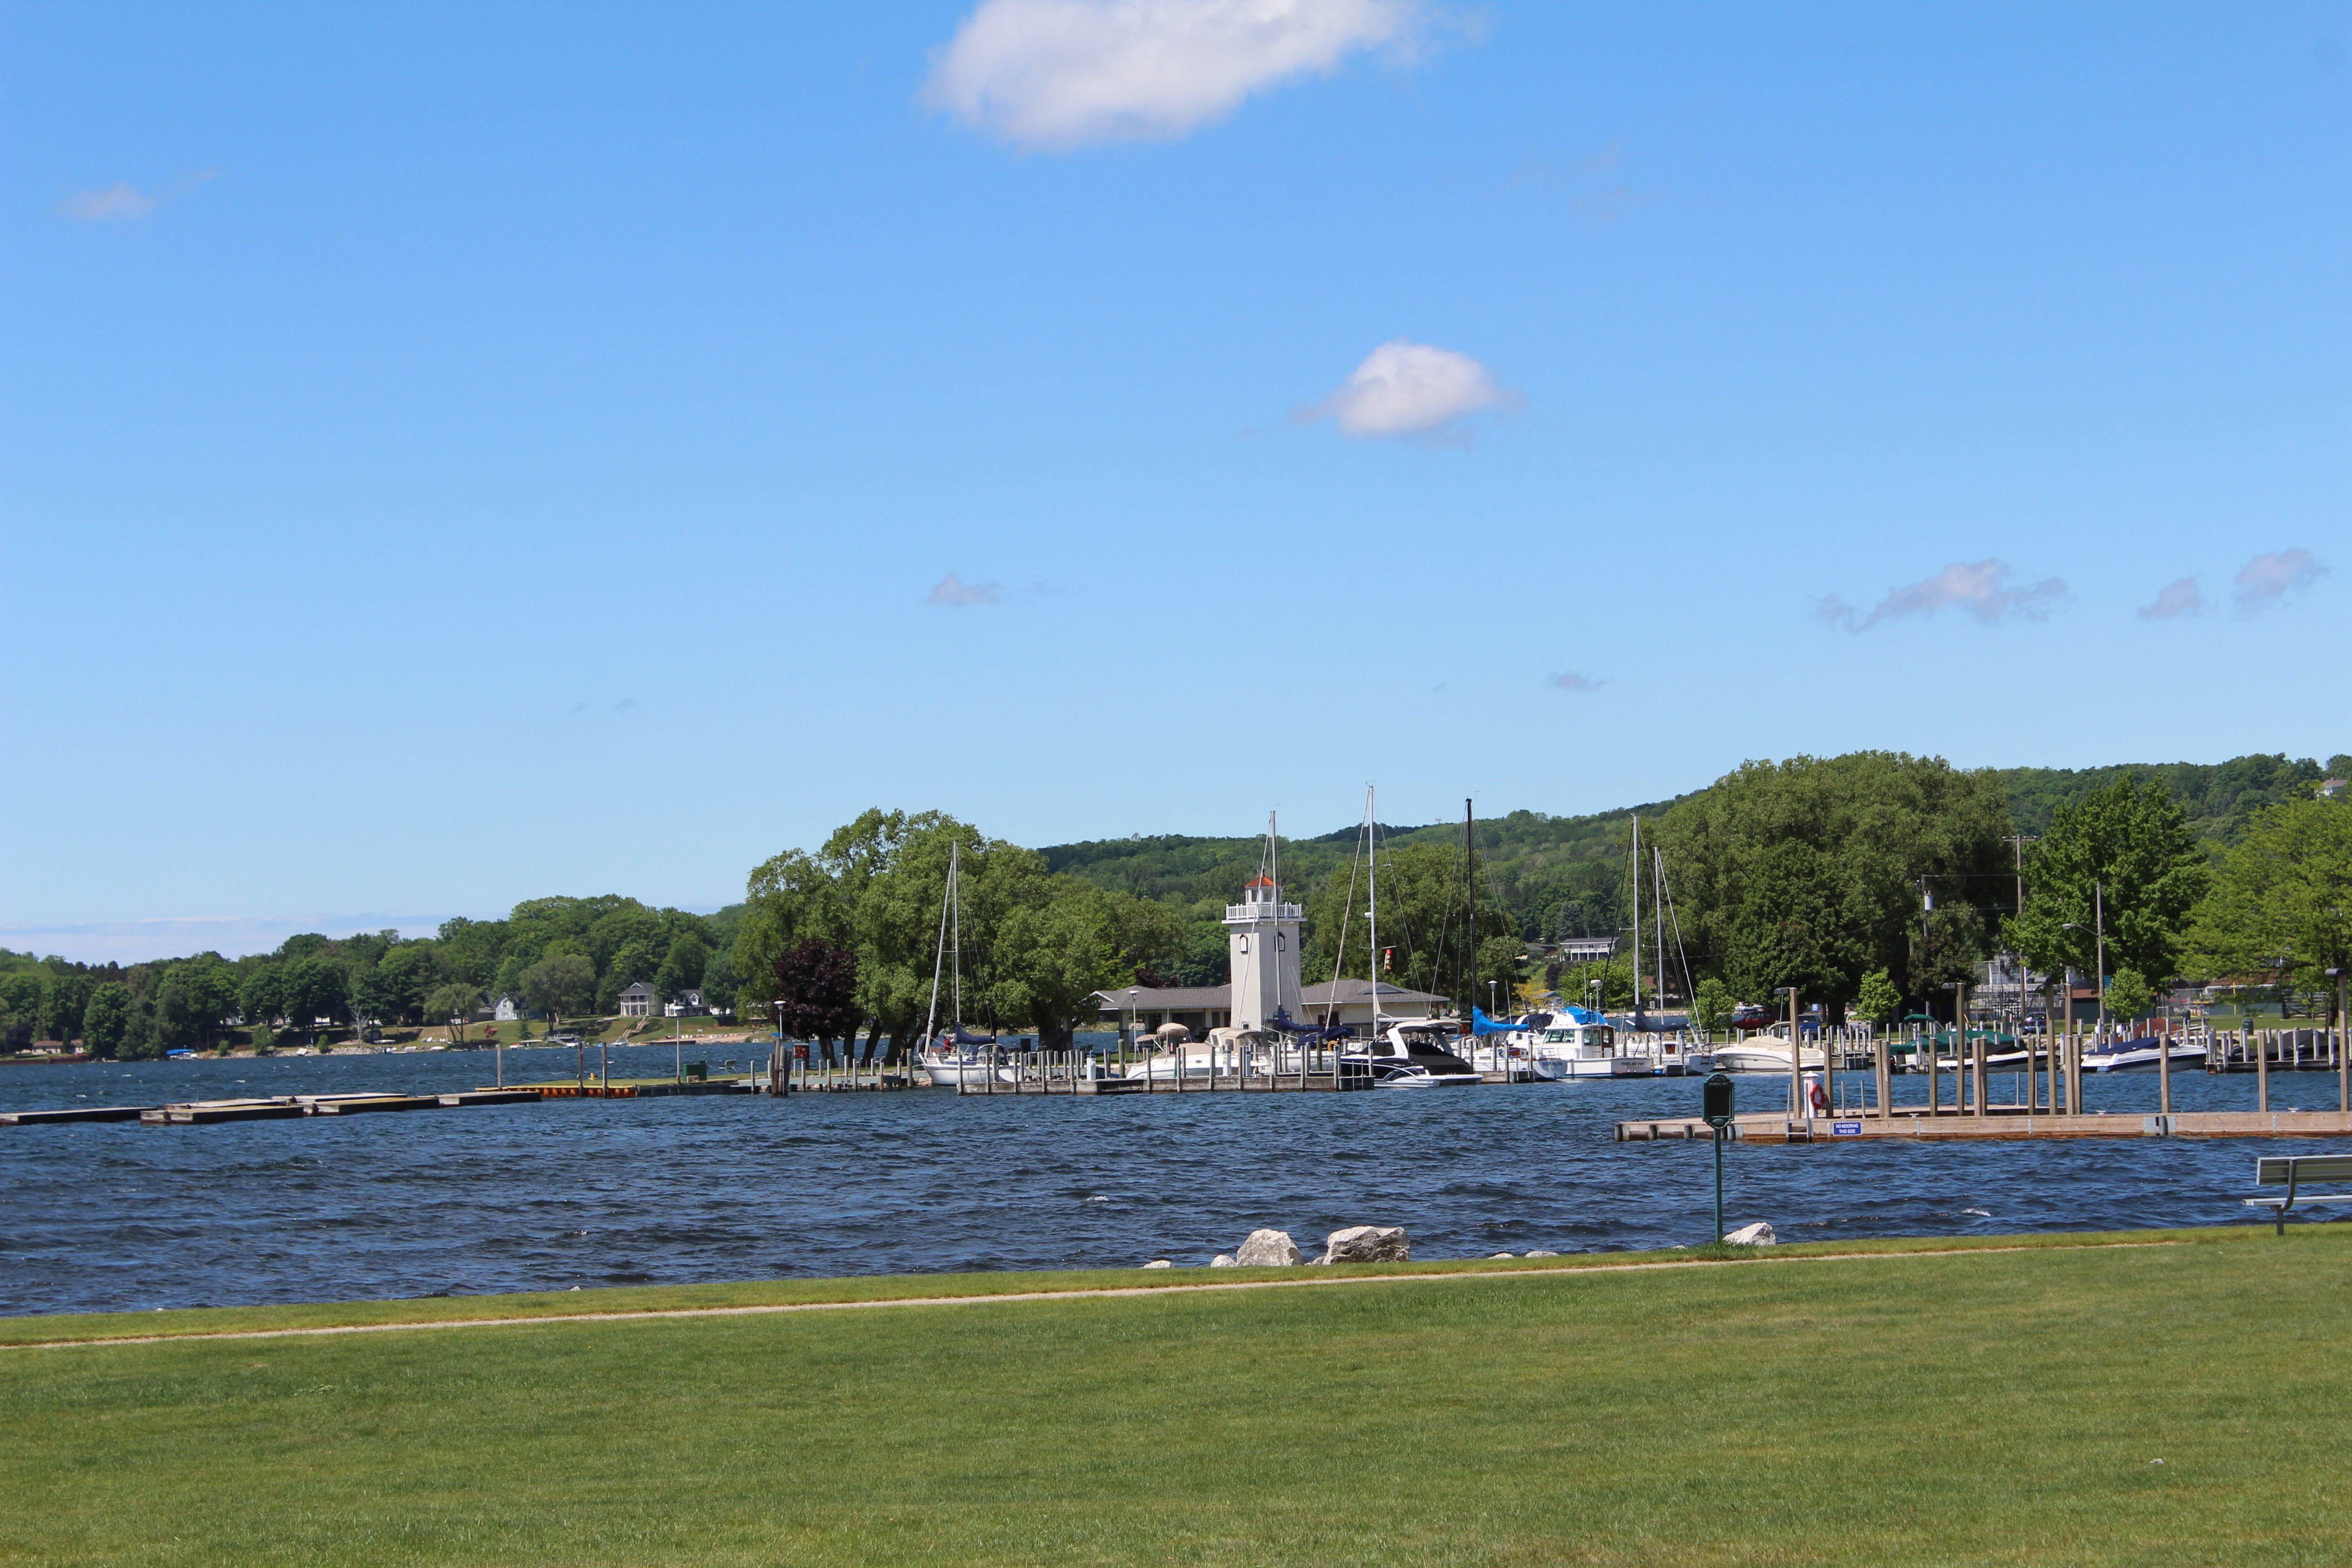 Northern michigan image by North Harbor Real Estate on